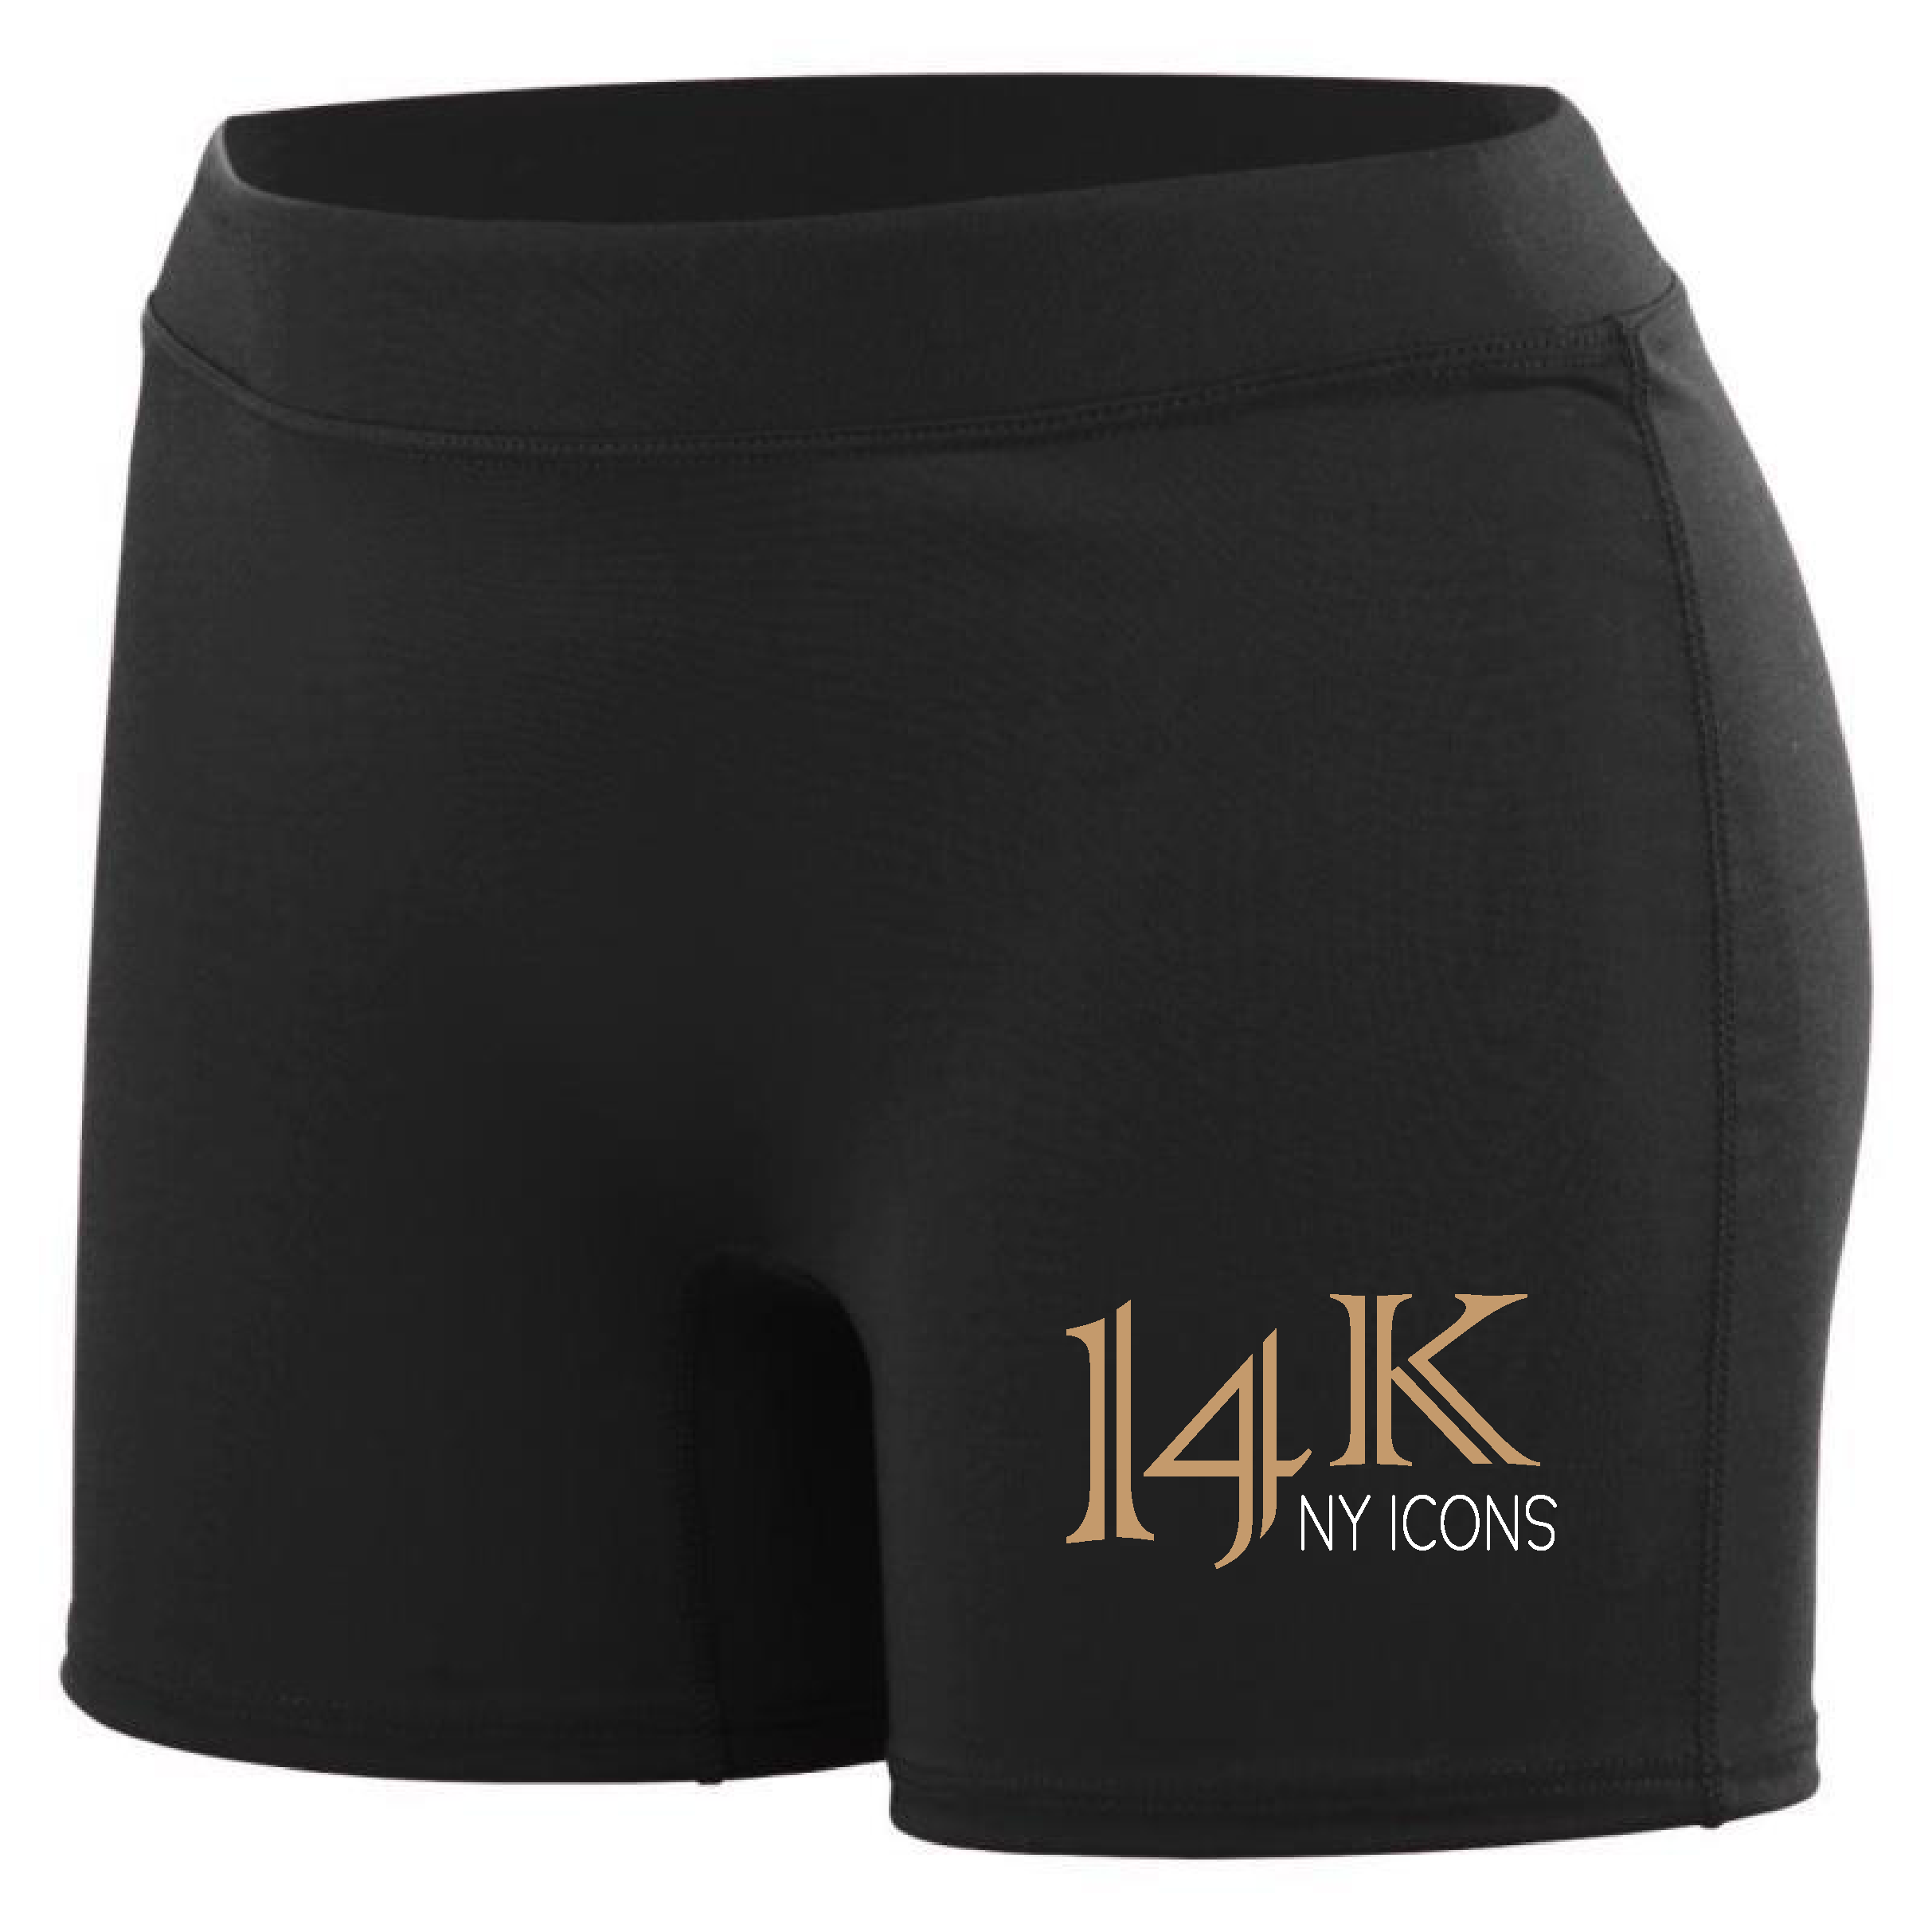 14K fitted shorts